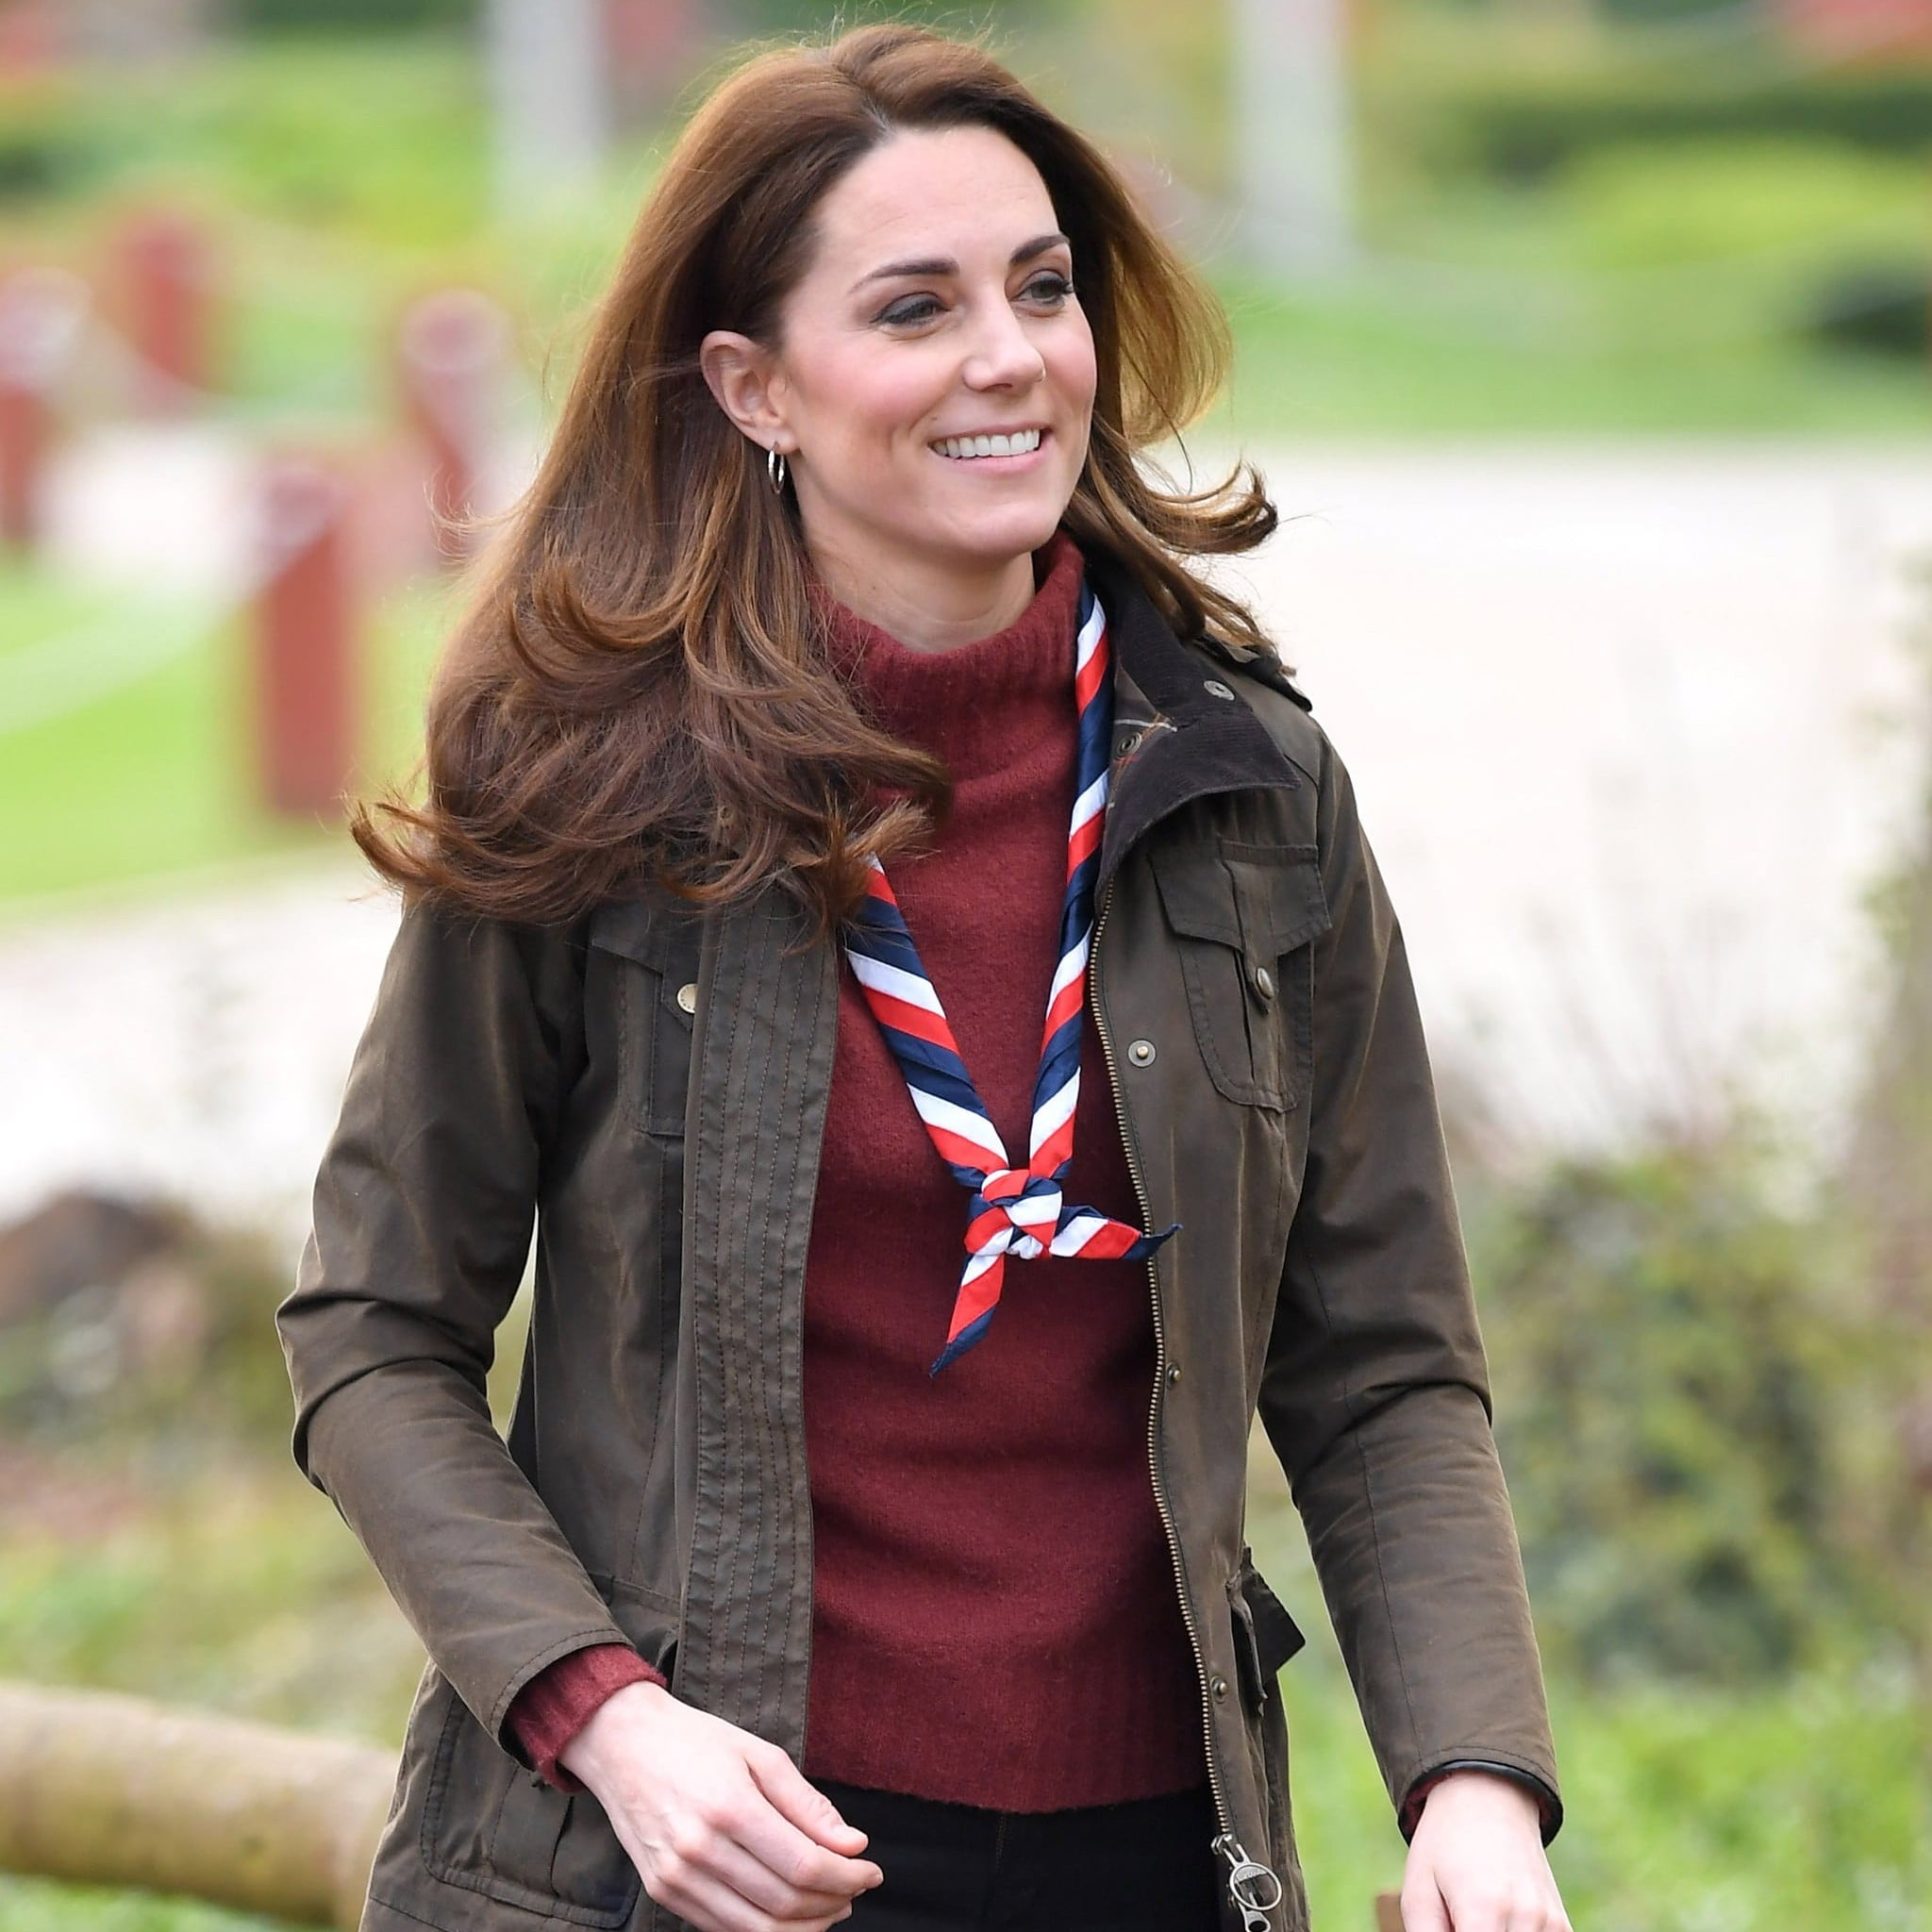 e36a2732ae Kate Middleton s J.Crew Sweater For Scouts Visit March 2019 ...